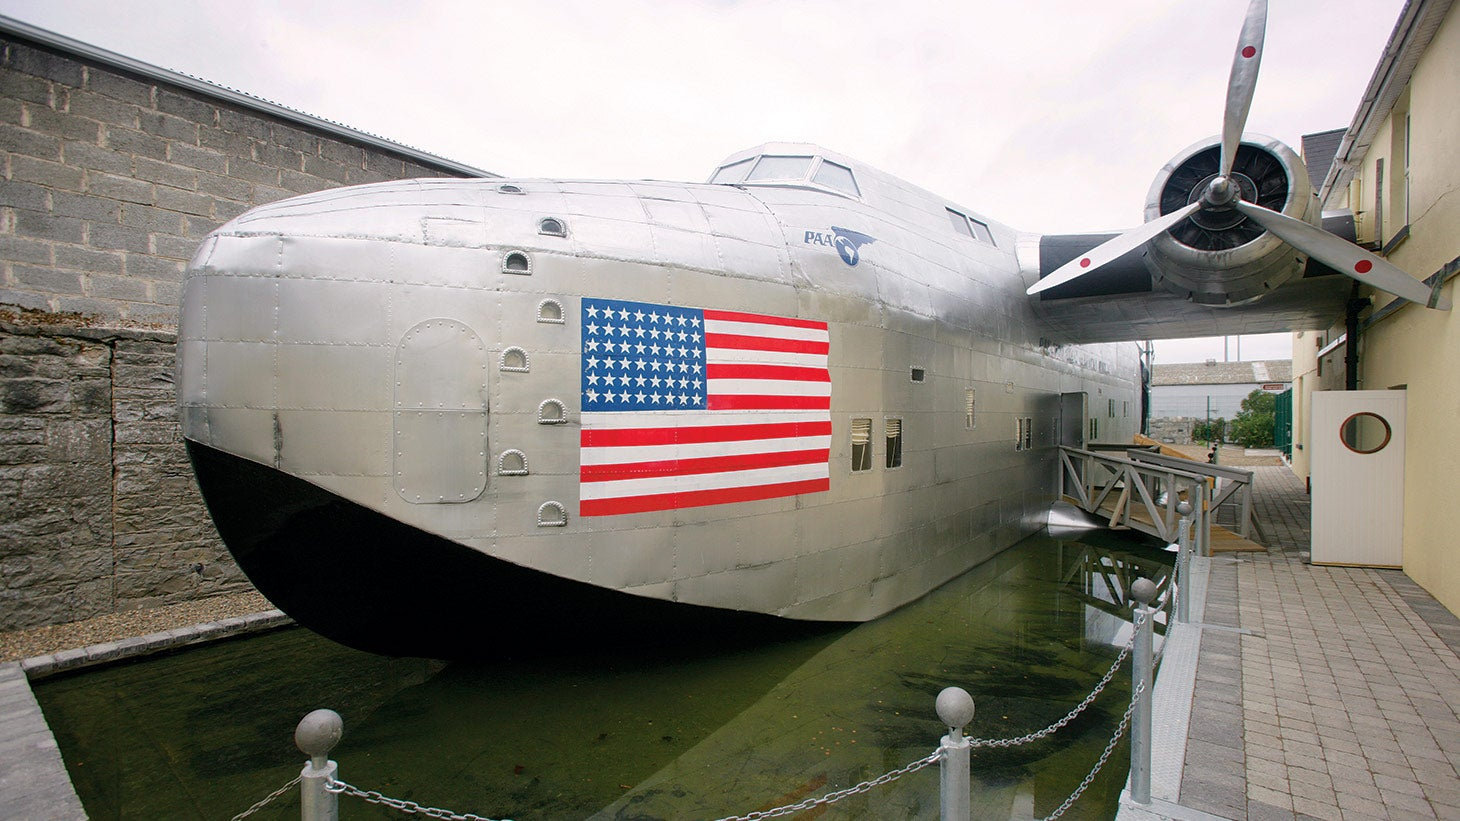 Visit the Foynes Flying Boat Maritime Museum.